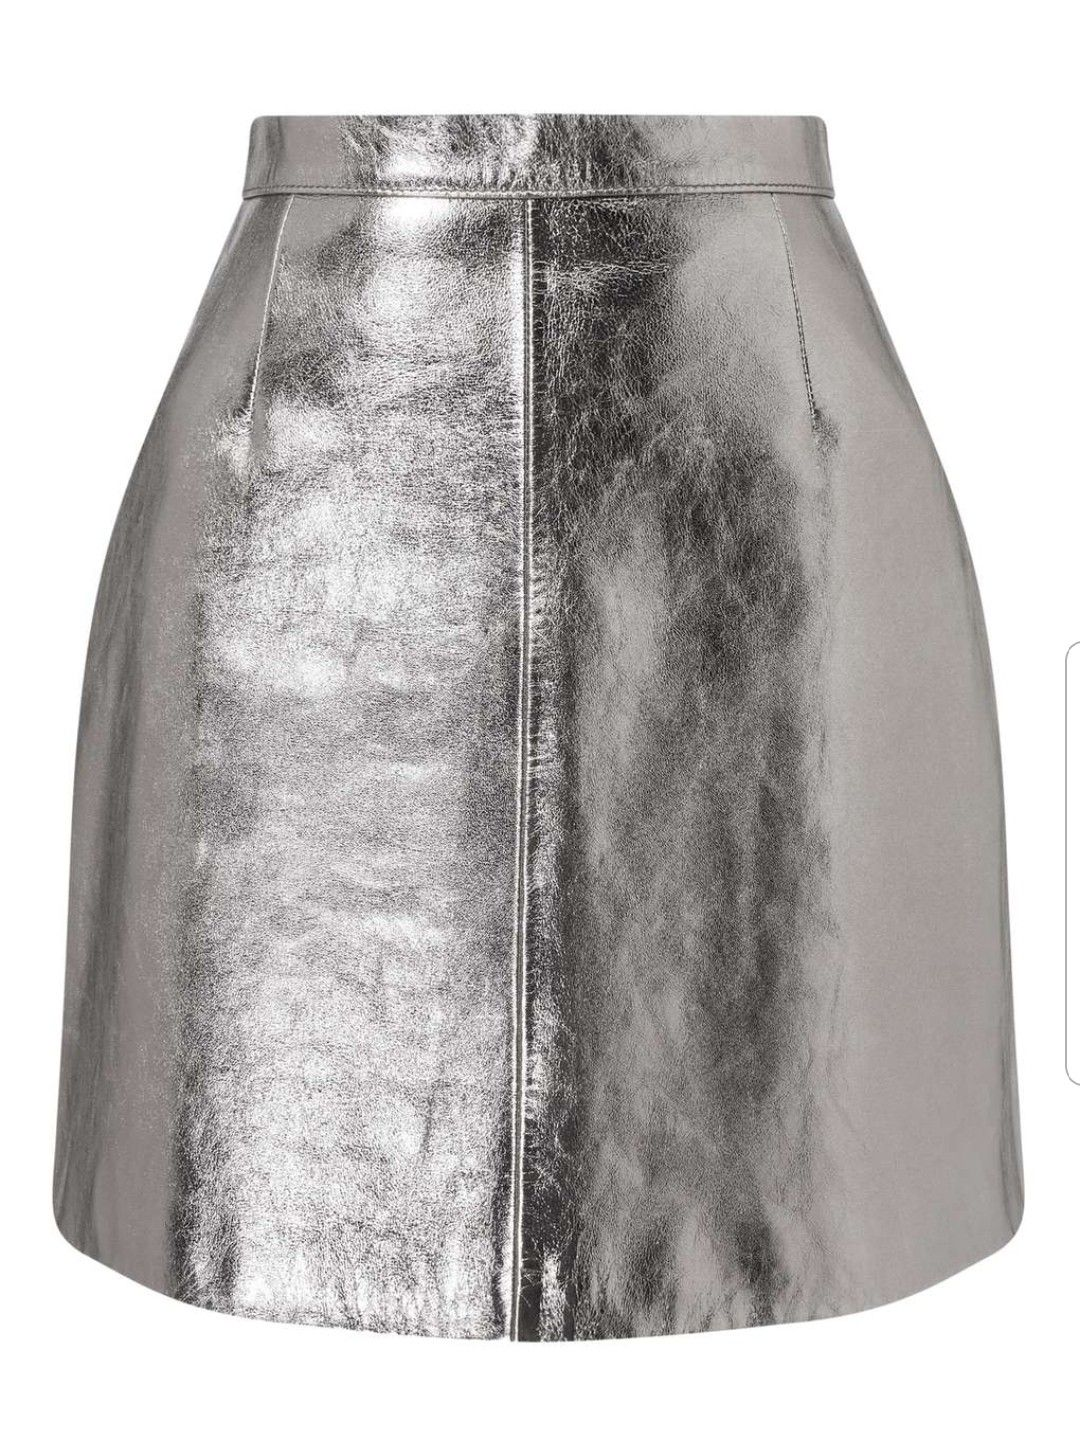 48808144f05d Silver leather mini skirt Miss Selfridge (sold out) | Future fashion ...